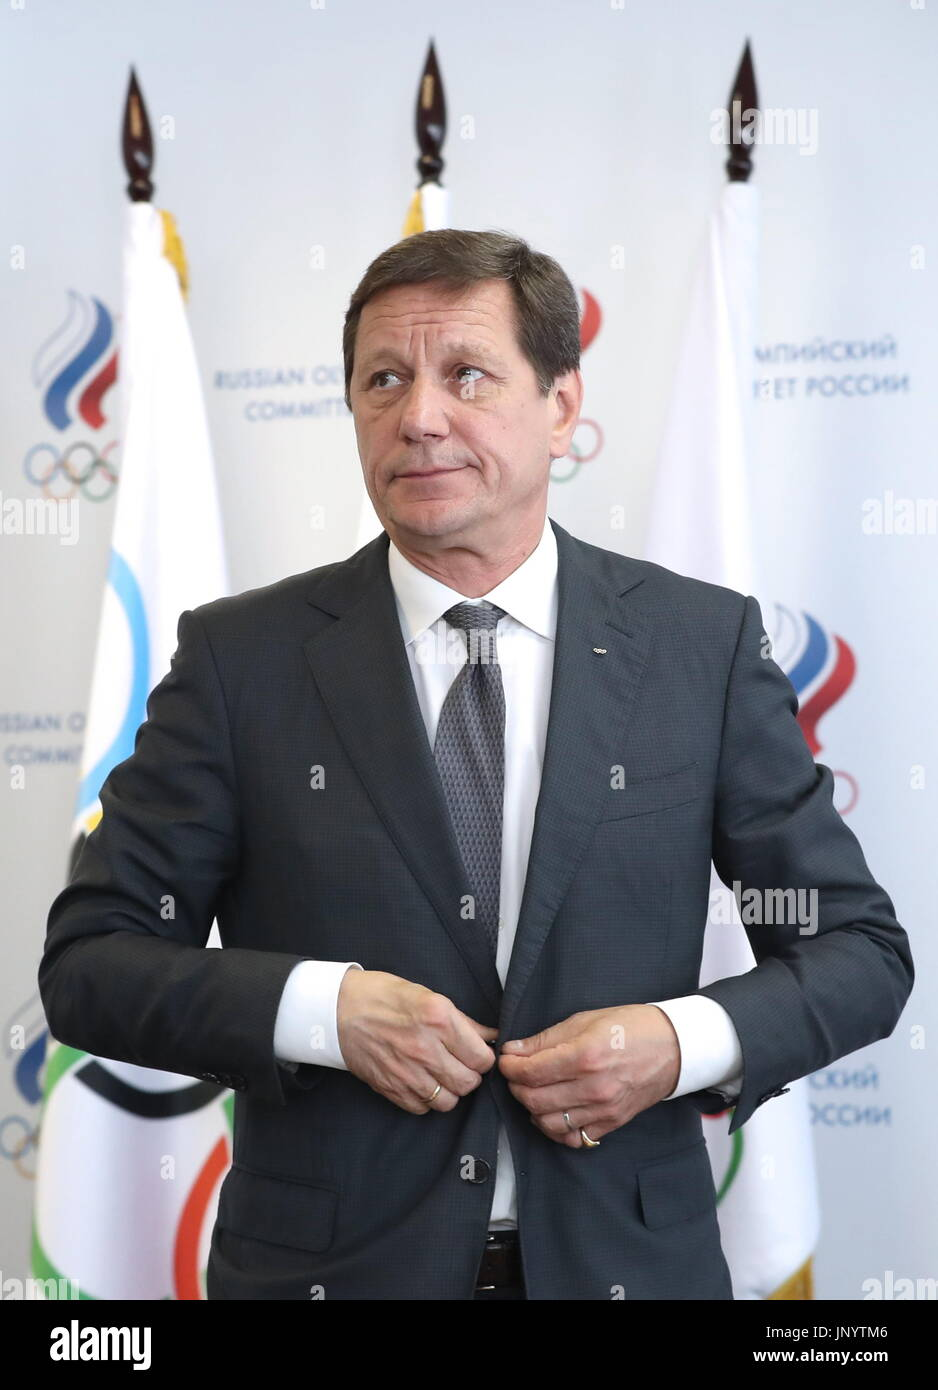 Moscow, Russia. 31st July, 2017. Russian State Duma First Deputy Chairman, President of the Russian Olympic Committee, Alexander Zhukov during a press conference to summarize the work done by the Russia's Independent Public Anti-Doping Commission established a year ago. Credit: Artyom Korotayev/TASS/Alamy Live News - Stock Image